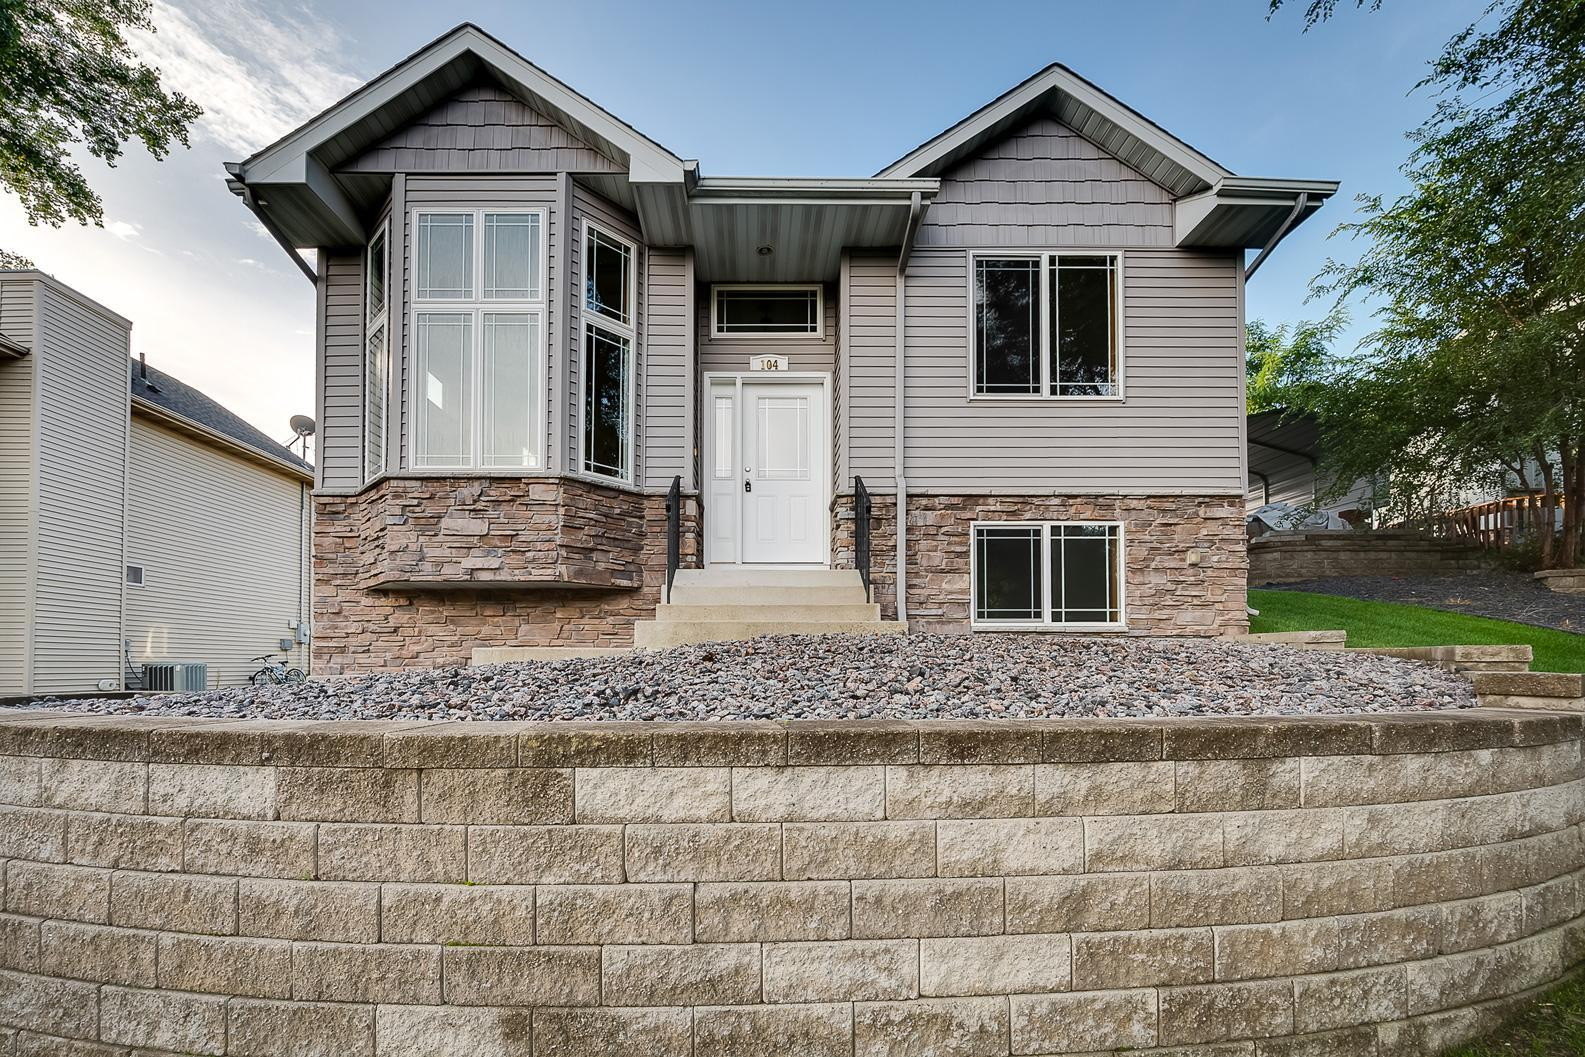 104 9th Street S Property Photo - South Saint Paul, MN real estate listing